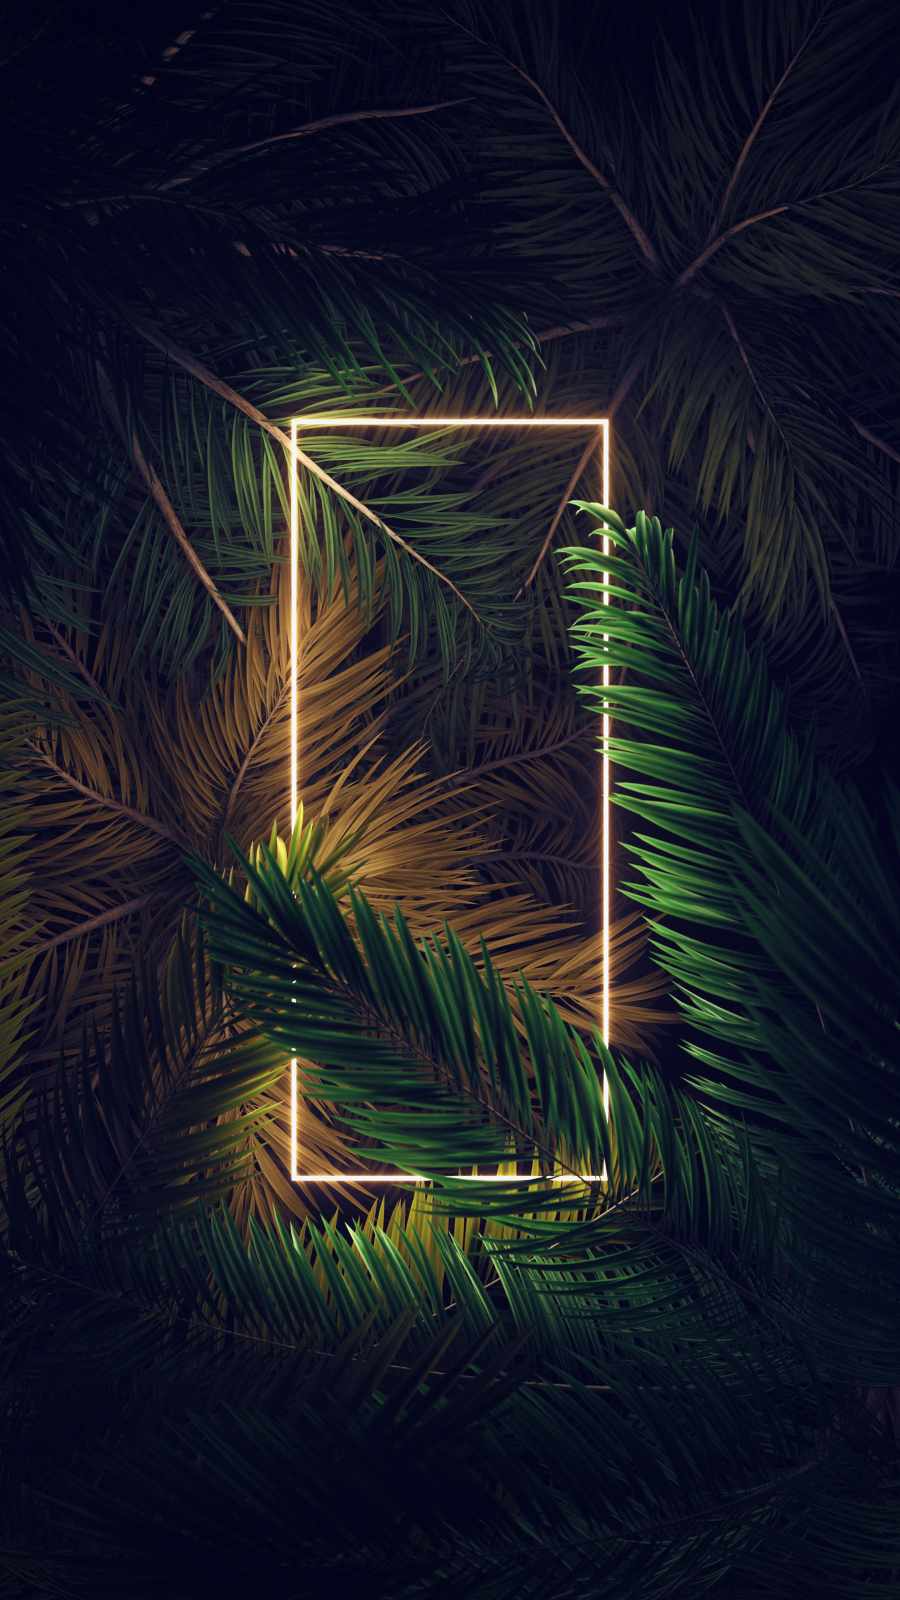 Neon Square Light In Foliage - IPhone Wallpapers